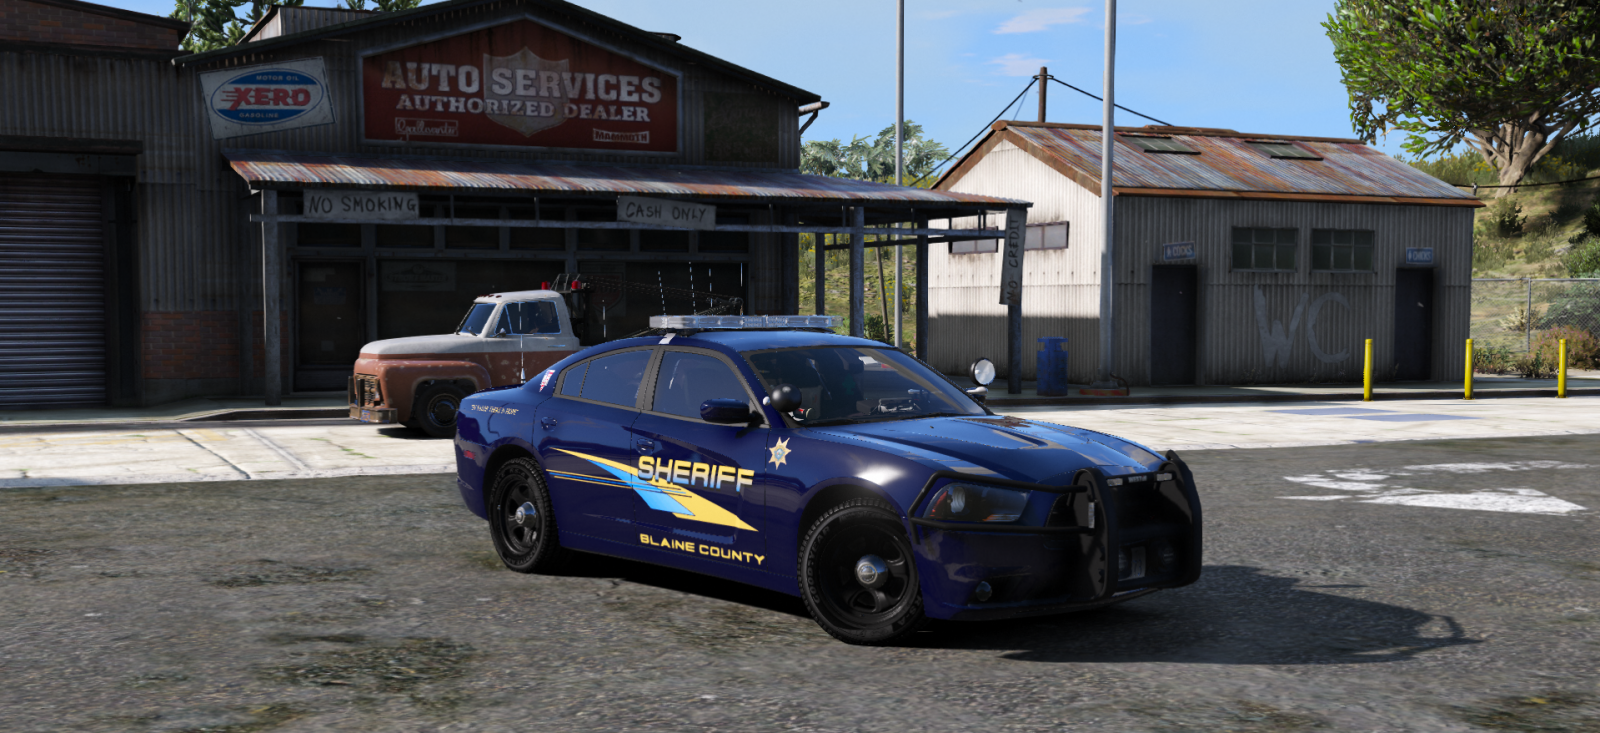 '14 Dodge Charger BCSo